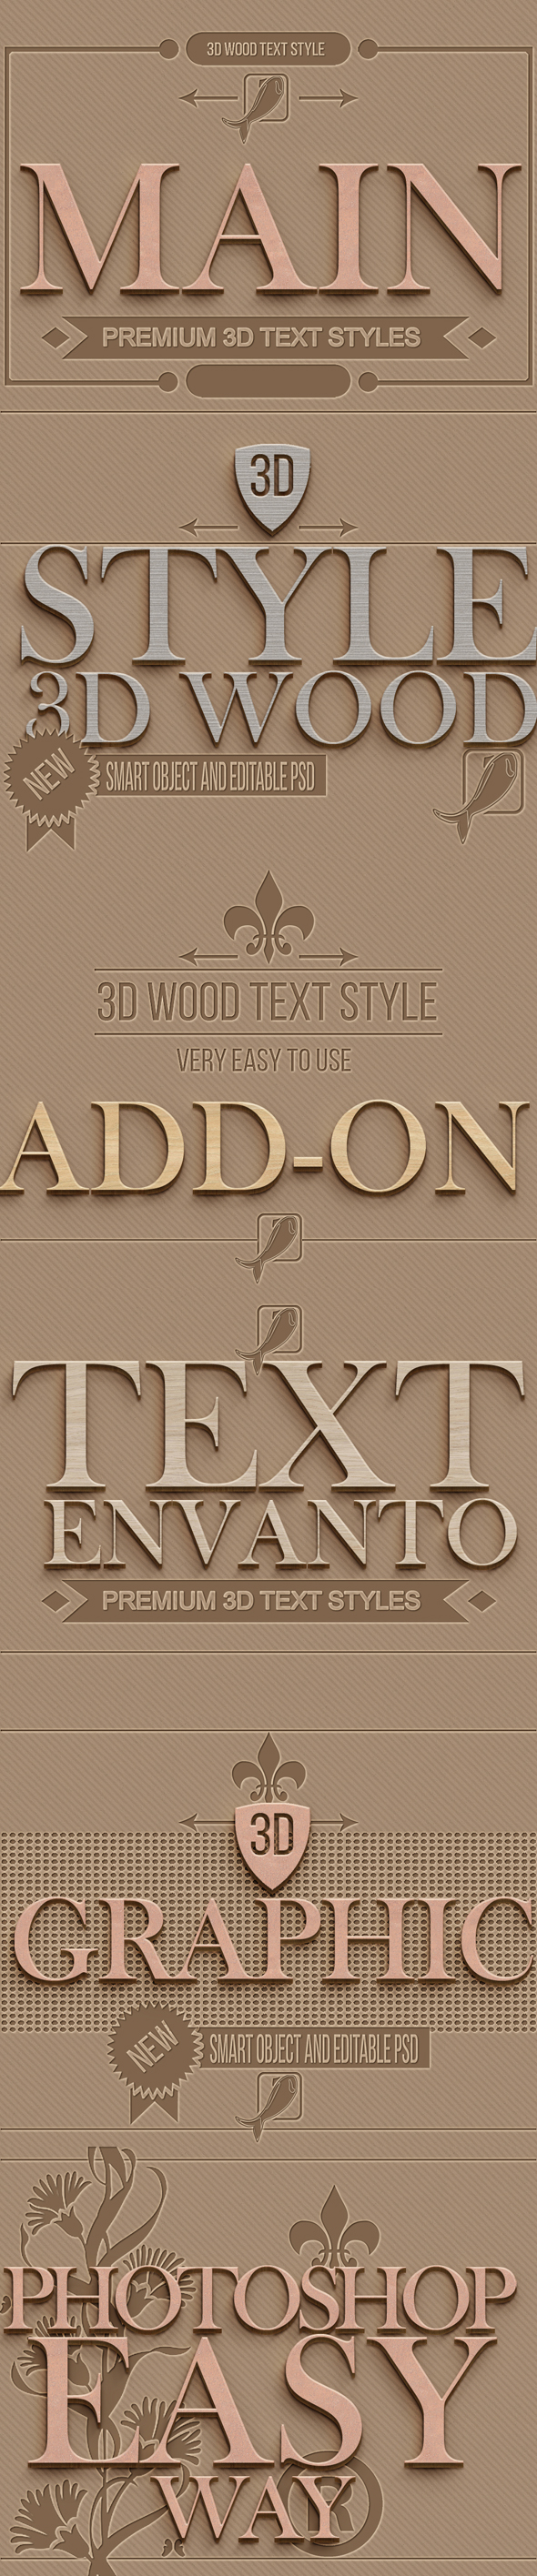 10 3D Text Styles D_11 - Styles Photoshop